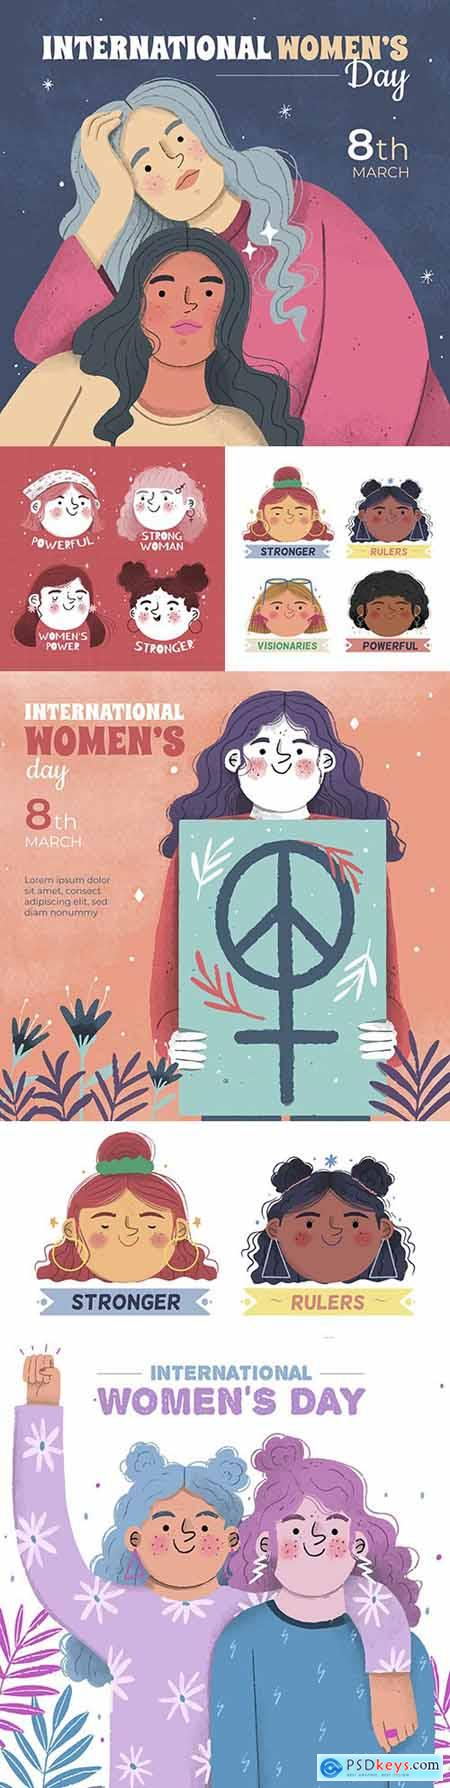 Happy Womens Day March 8 watercolor illustration 2